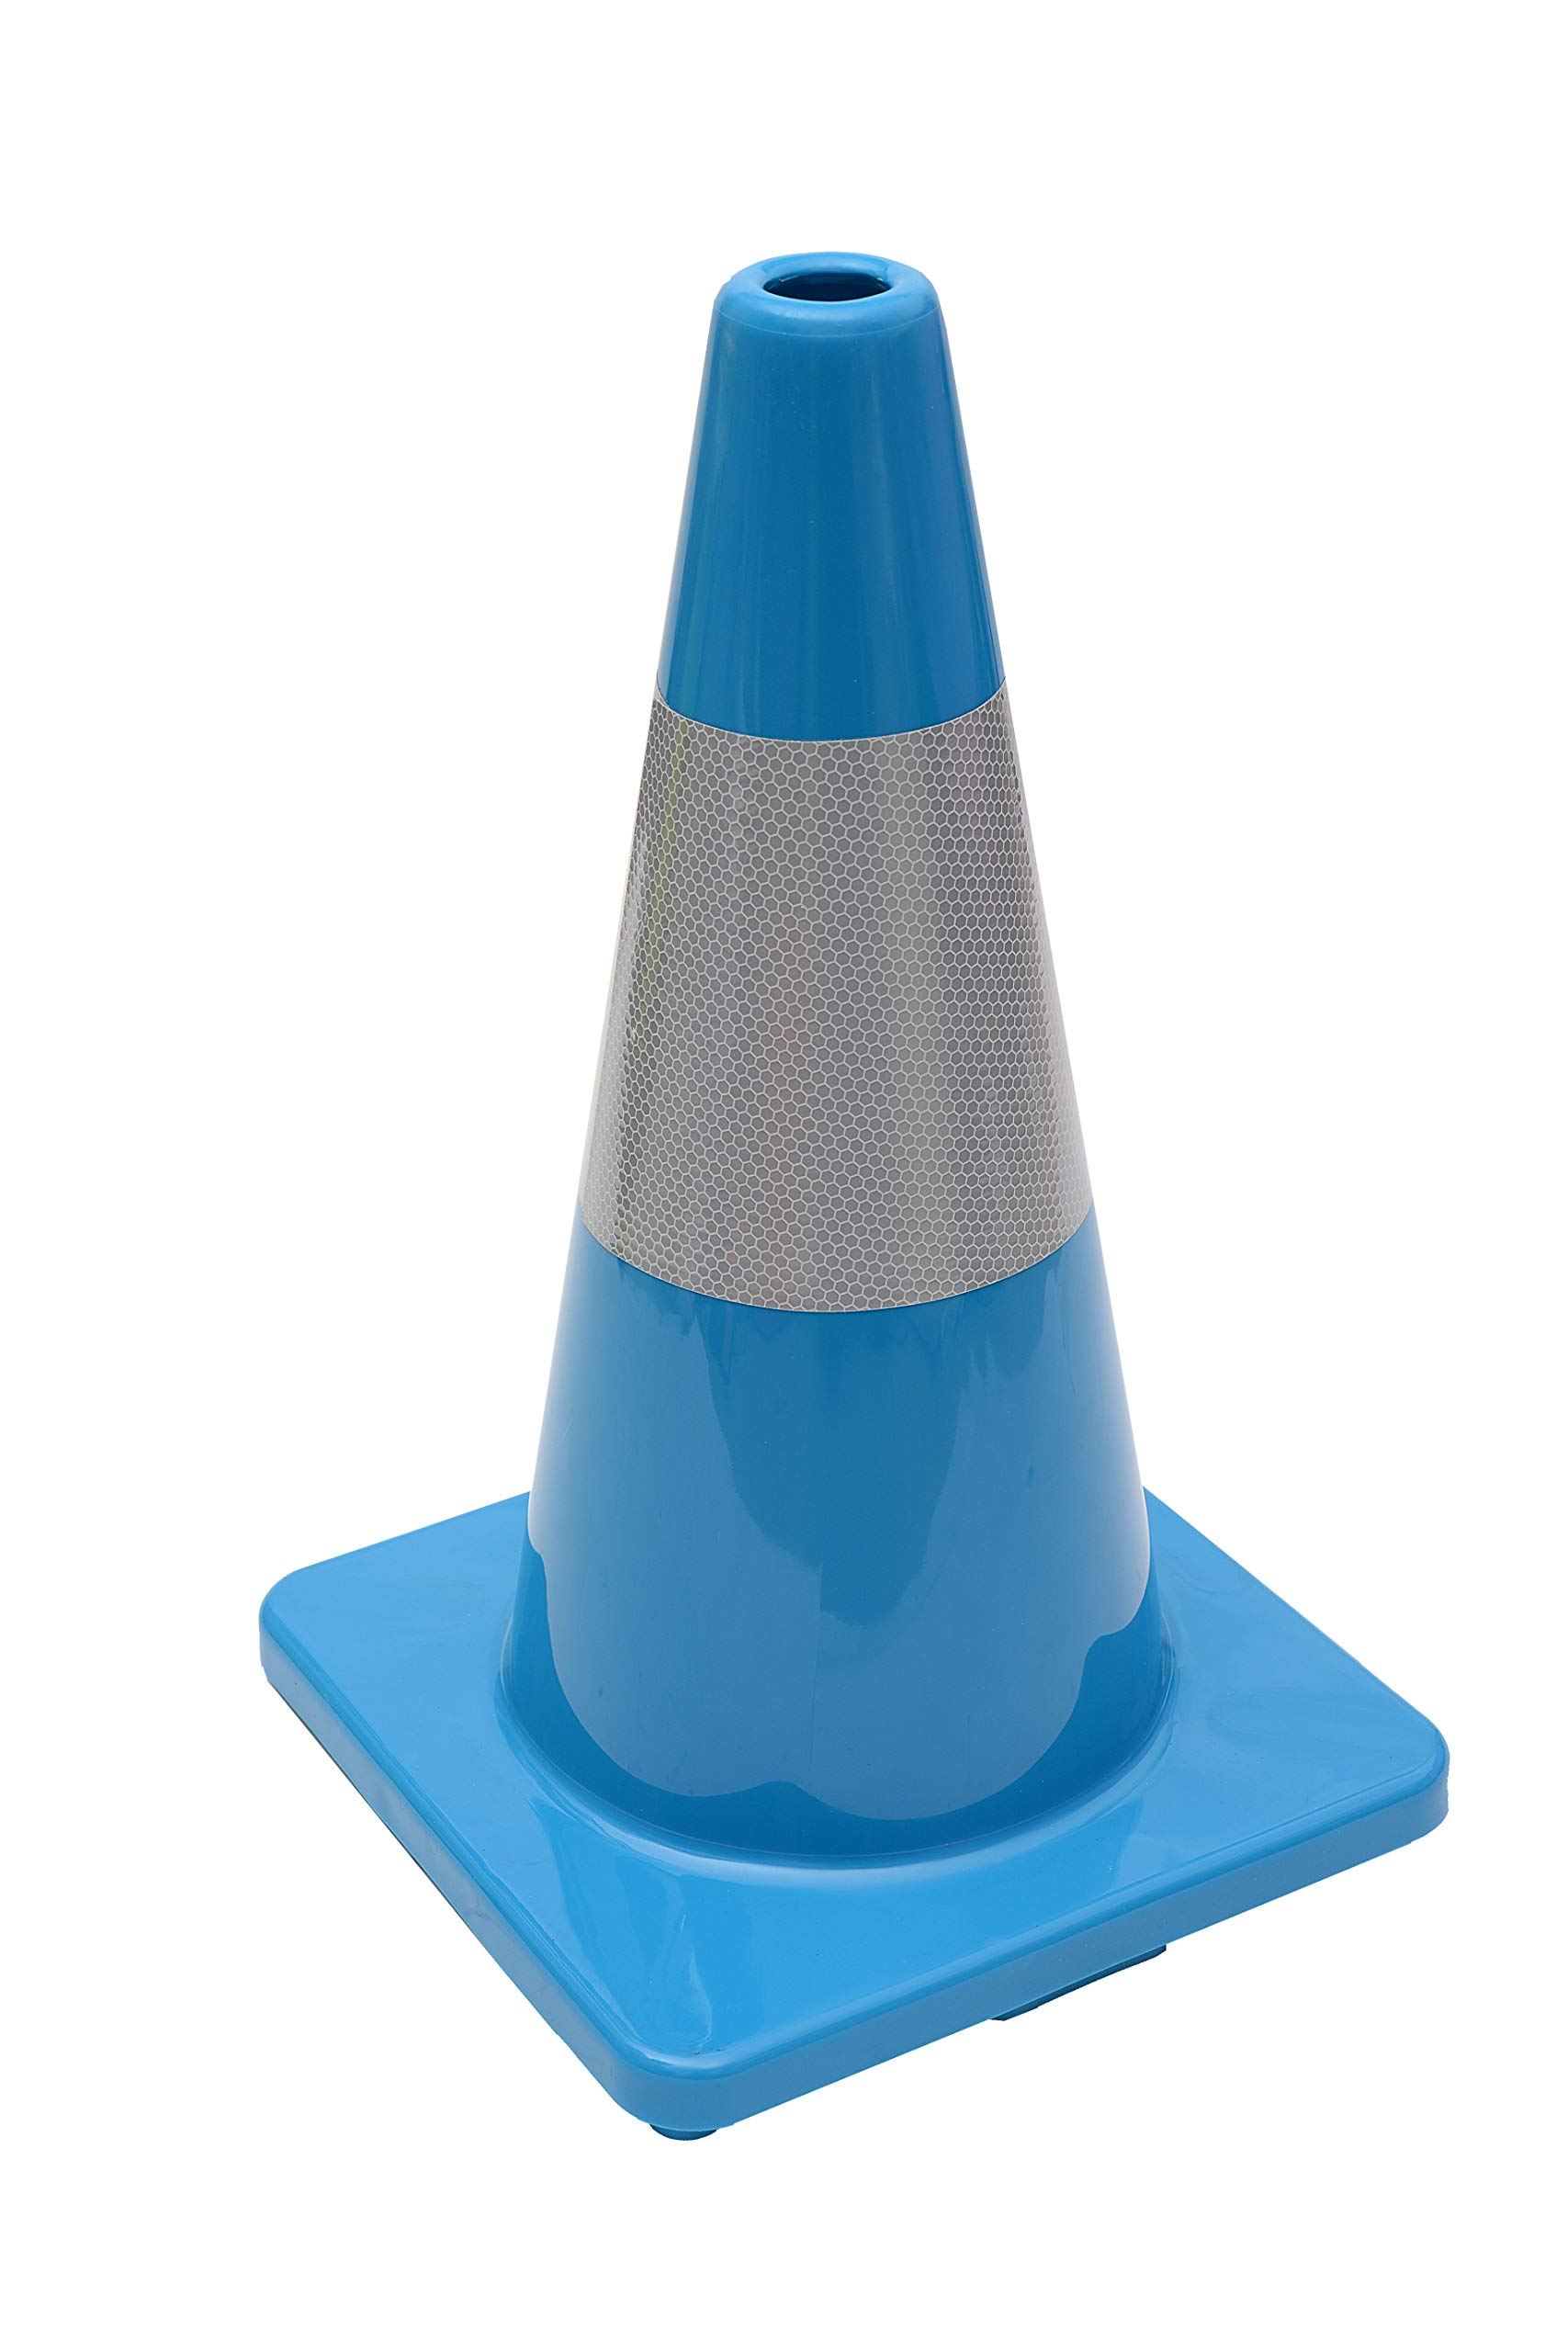 (Set of 12) CJ Safety 18'' Blue PVC Traffic Safety Cones with 6' Reflective Collar (12 Cones)